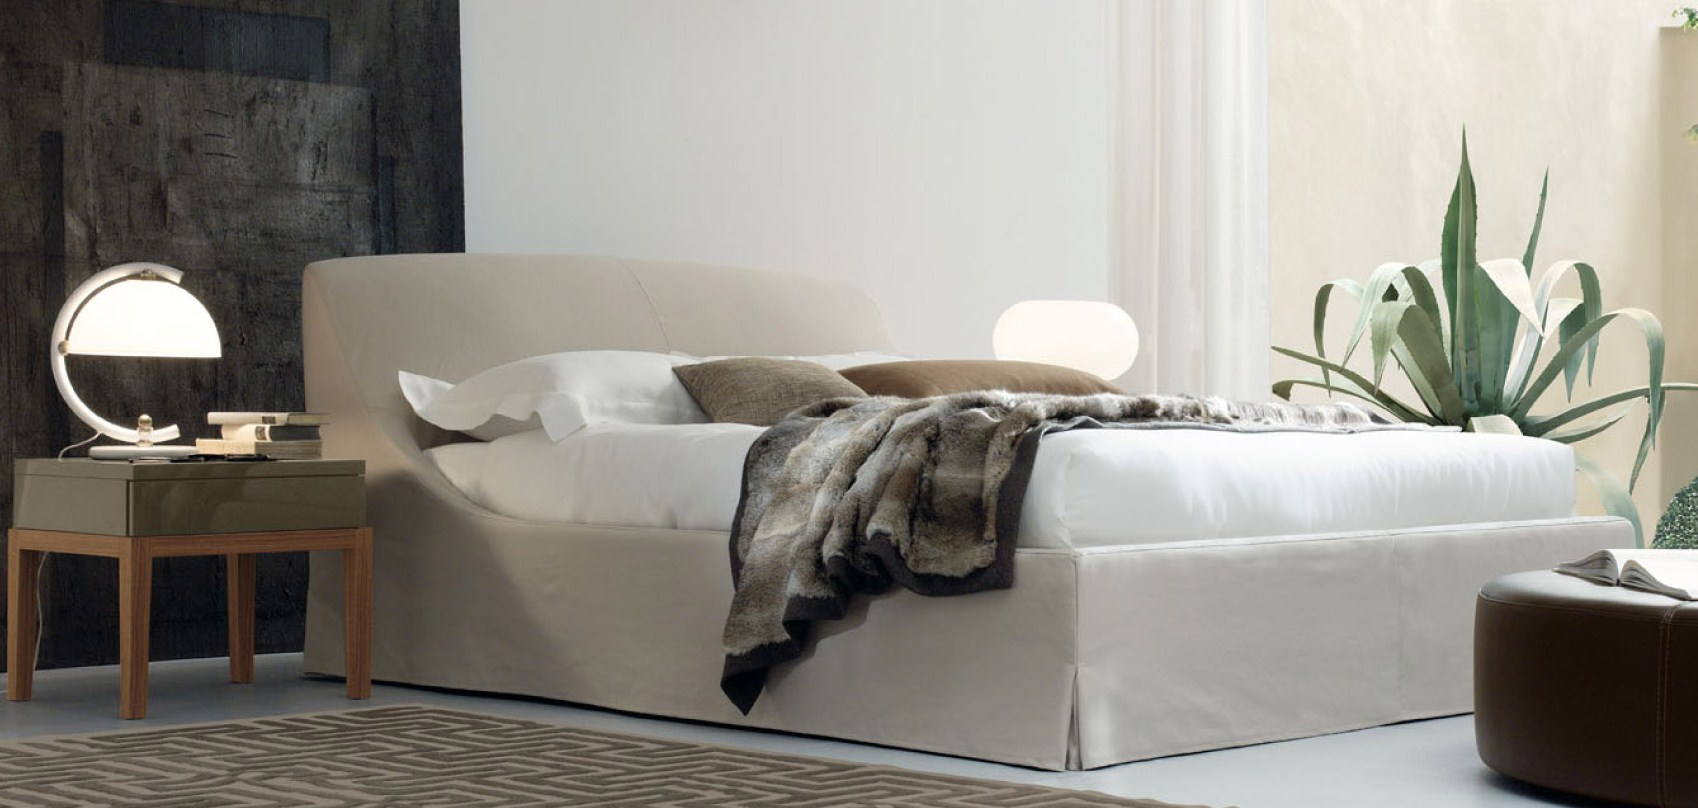 Letto elysee classic con mantovana by jesse - Mantovana letto ...